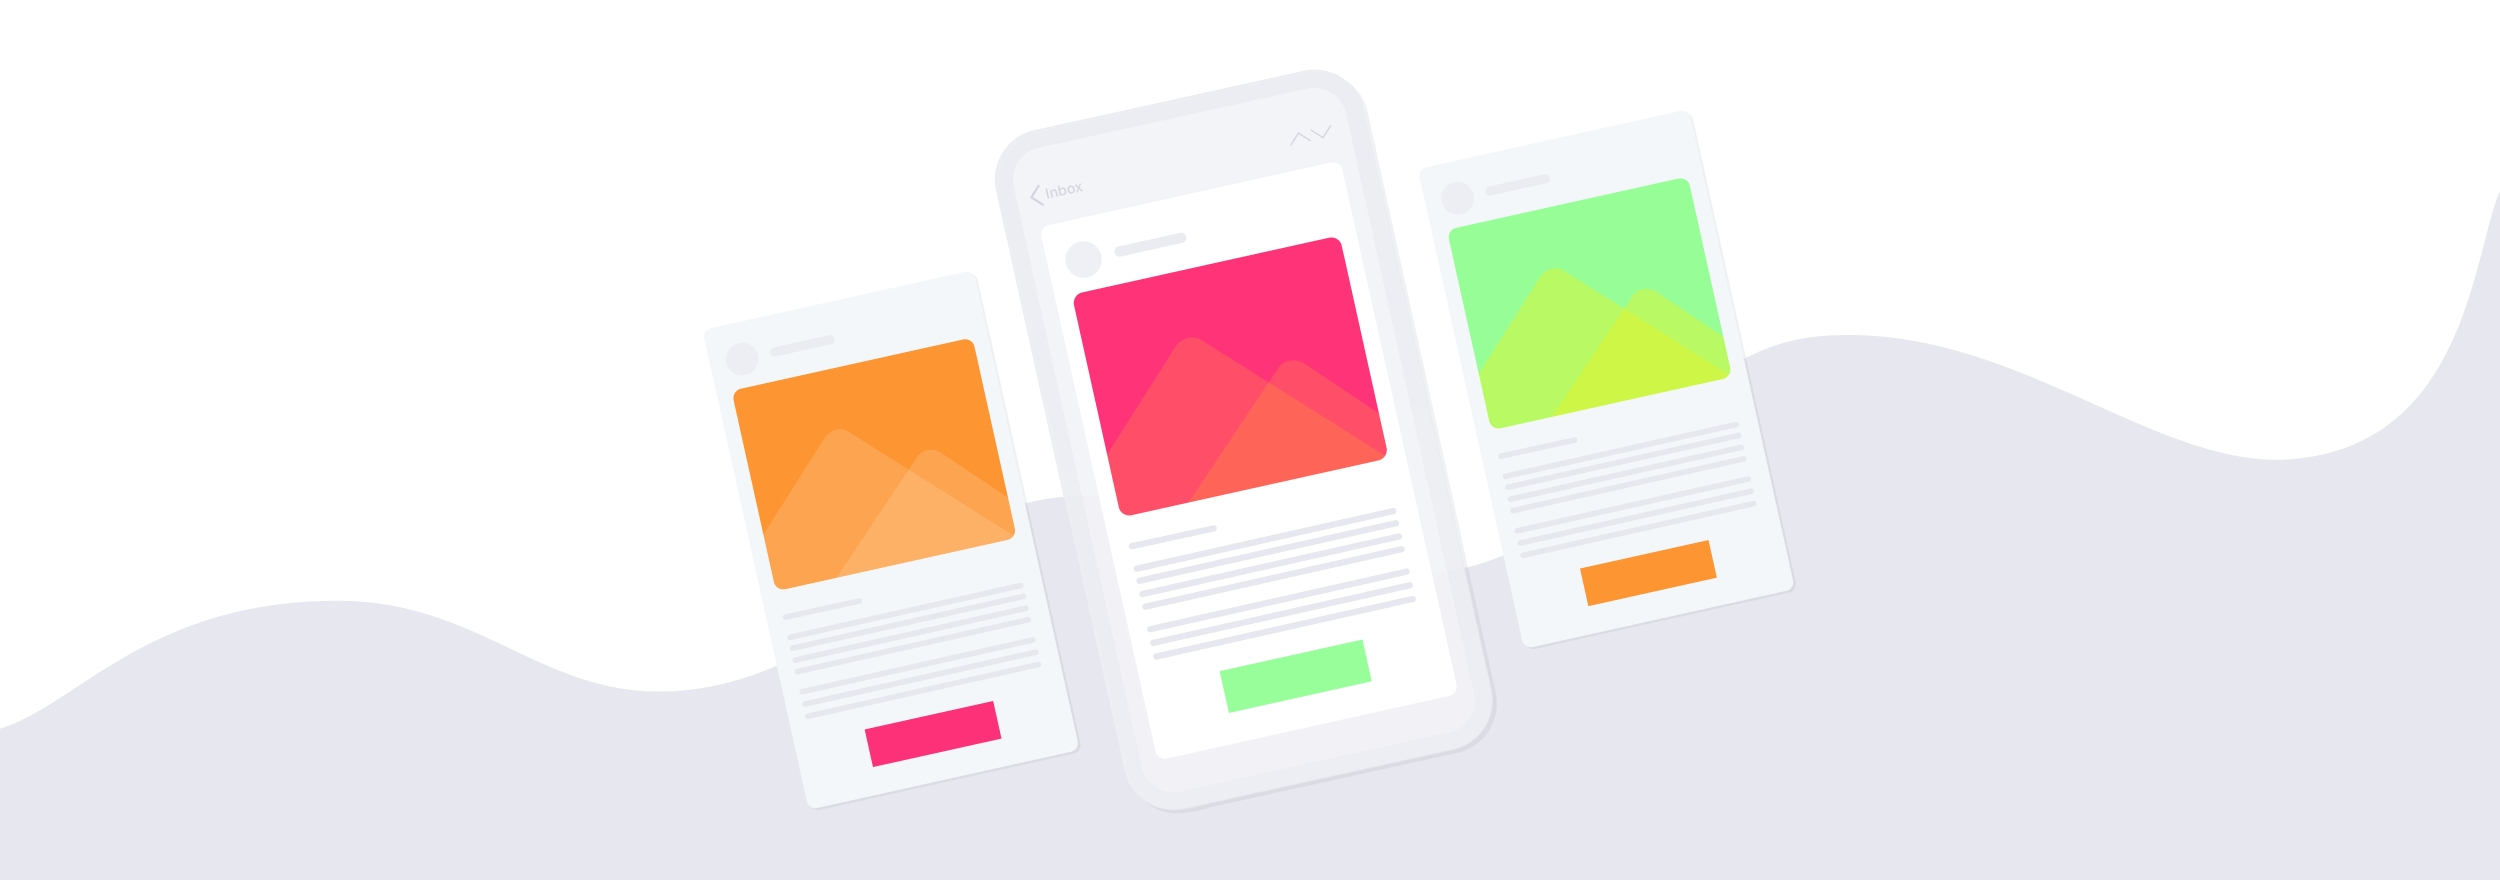 7 Onboarding Email Hacks That'll Boost Engagement And Retention